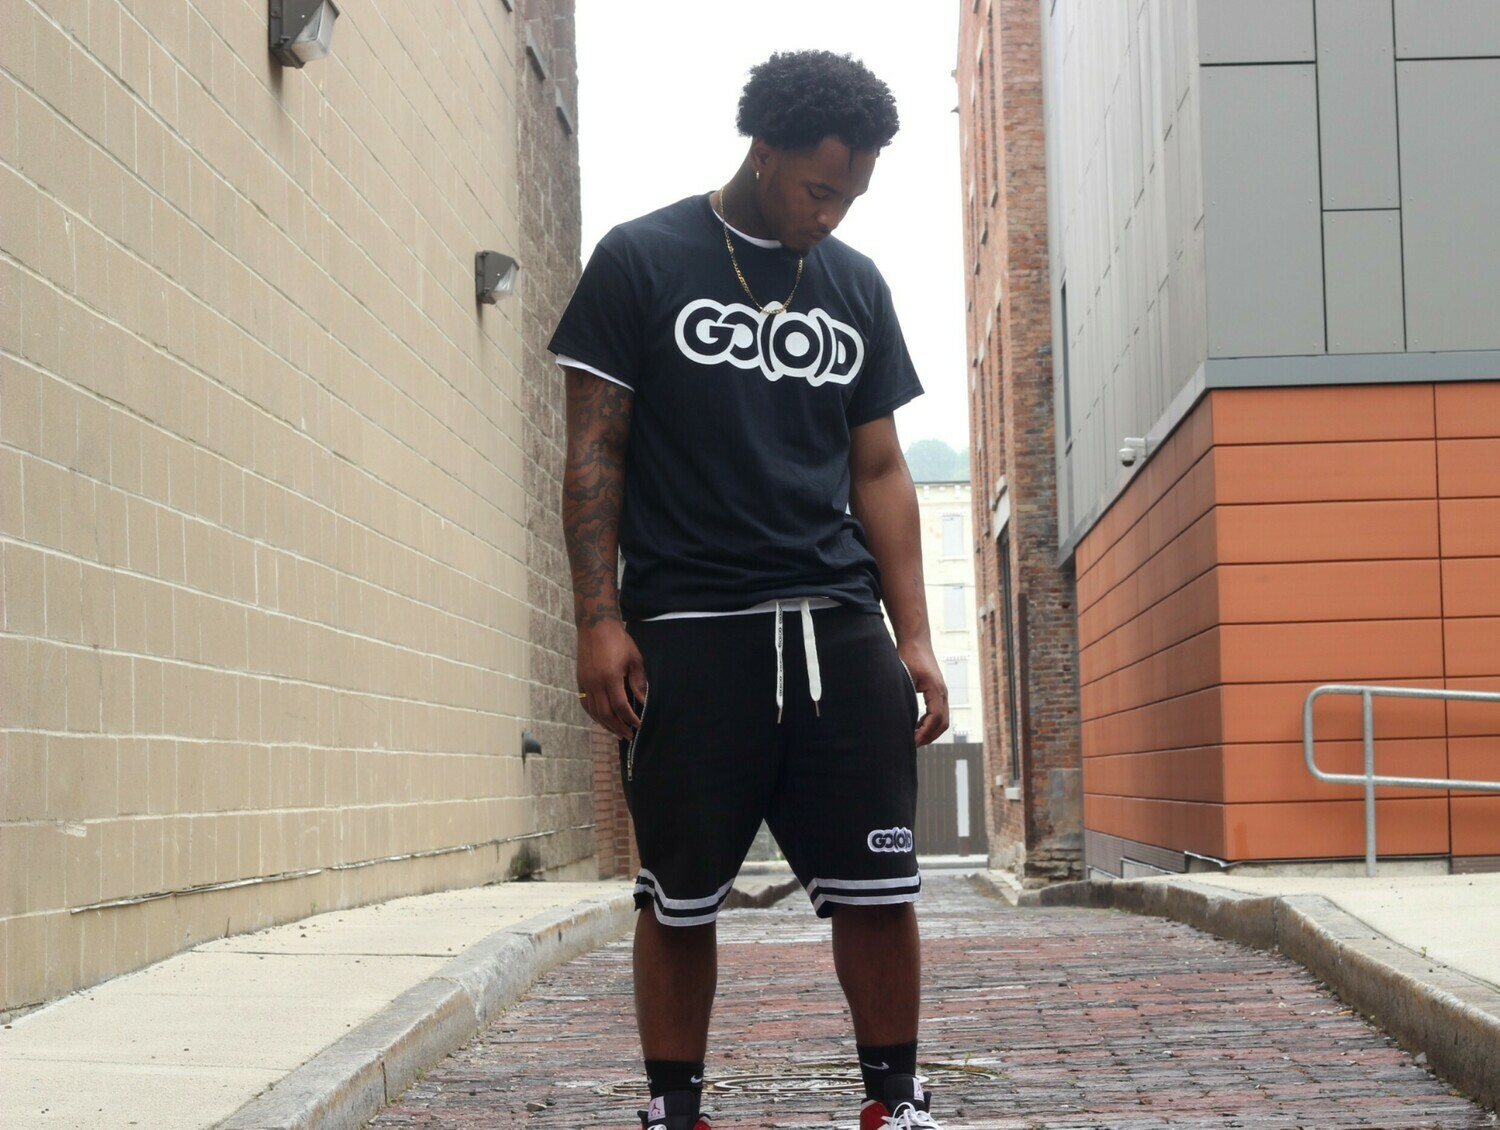 GO(O)D Wave Shorts-black/white/silver (runs about 1 size small)